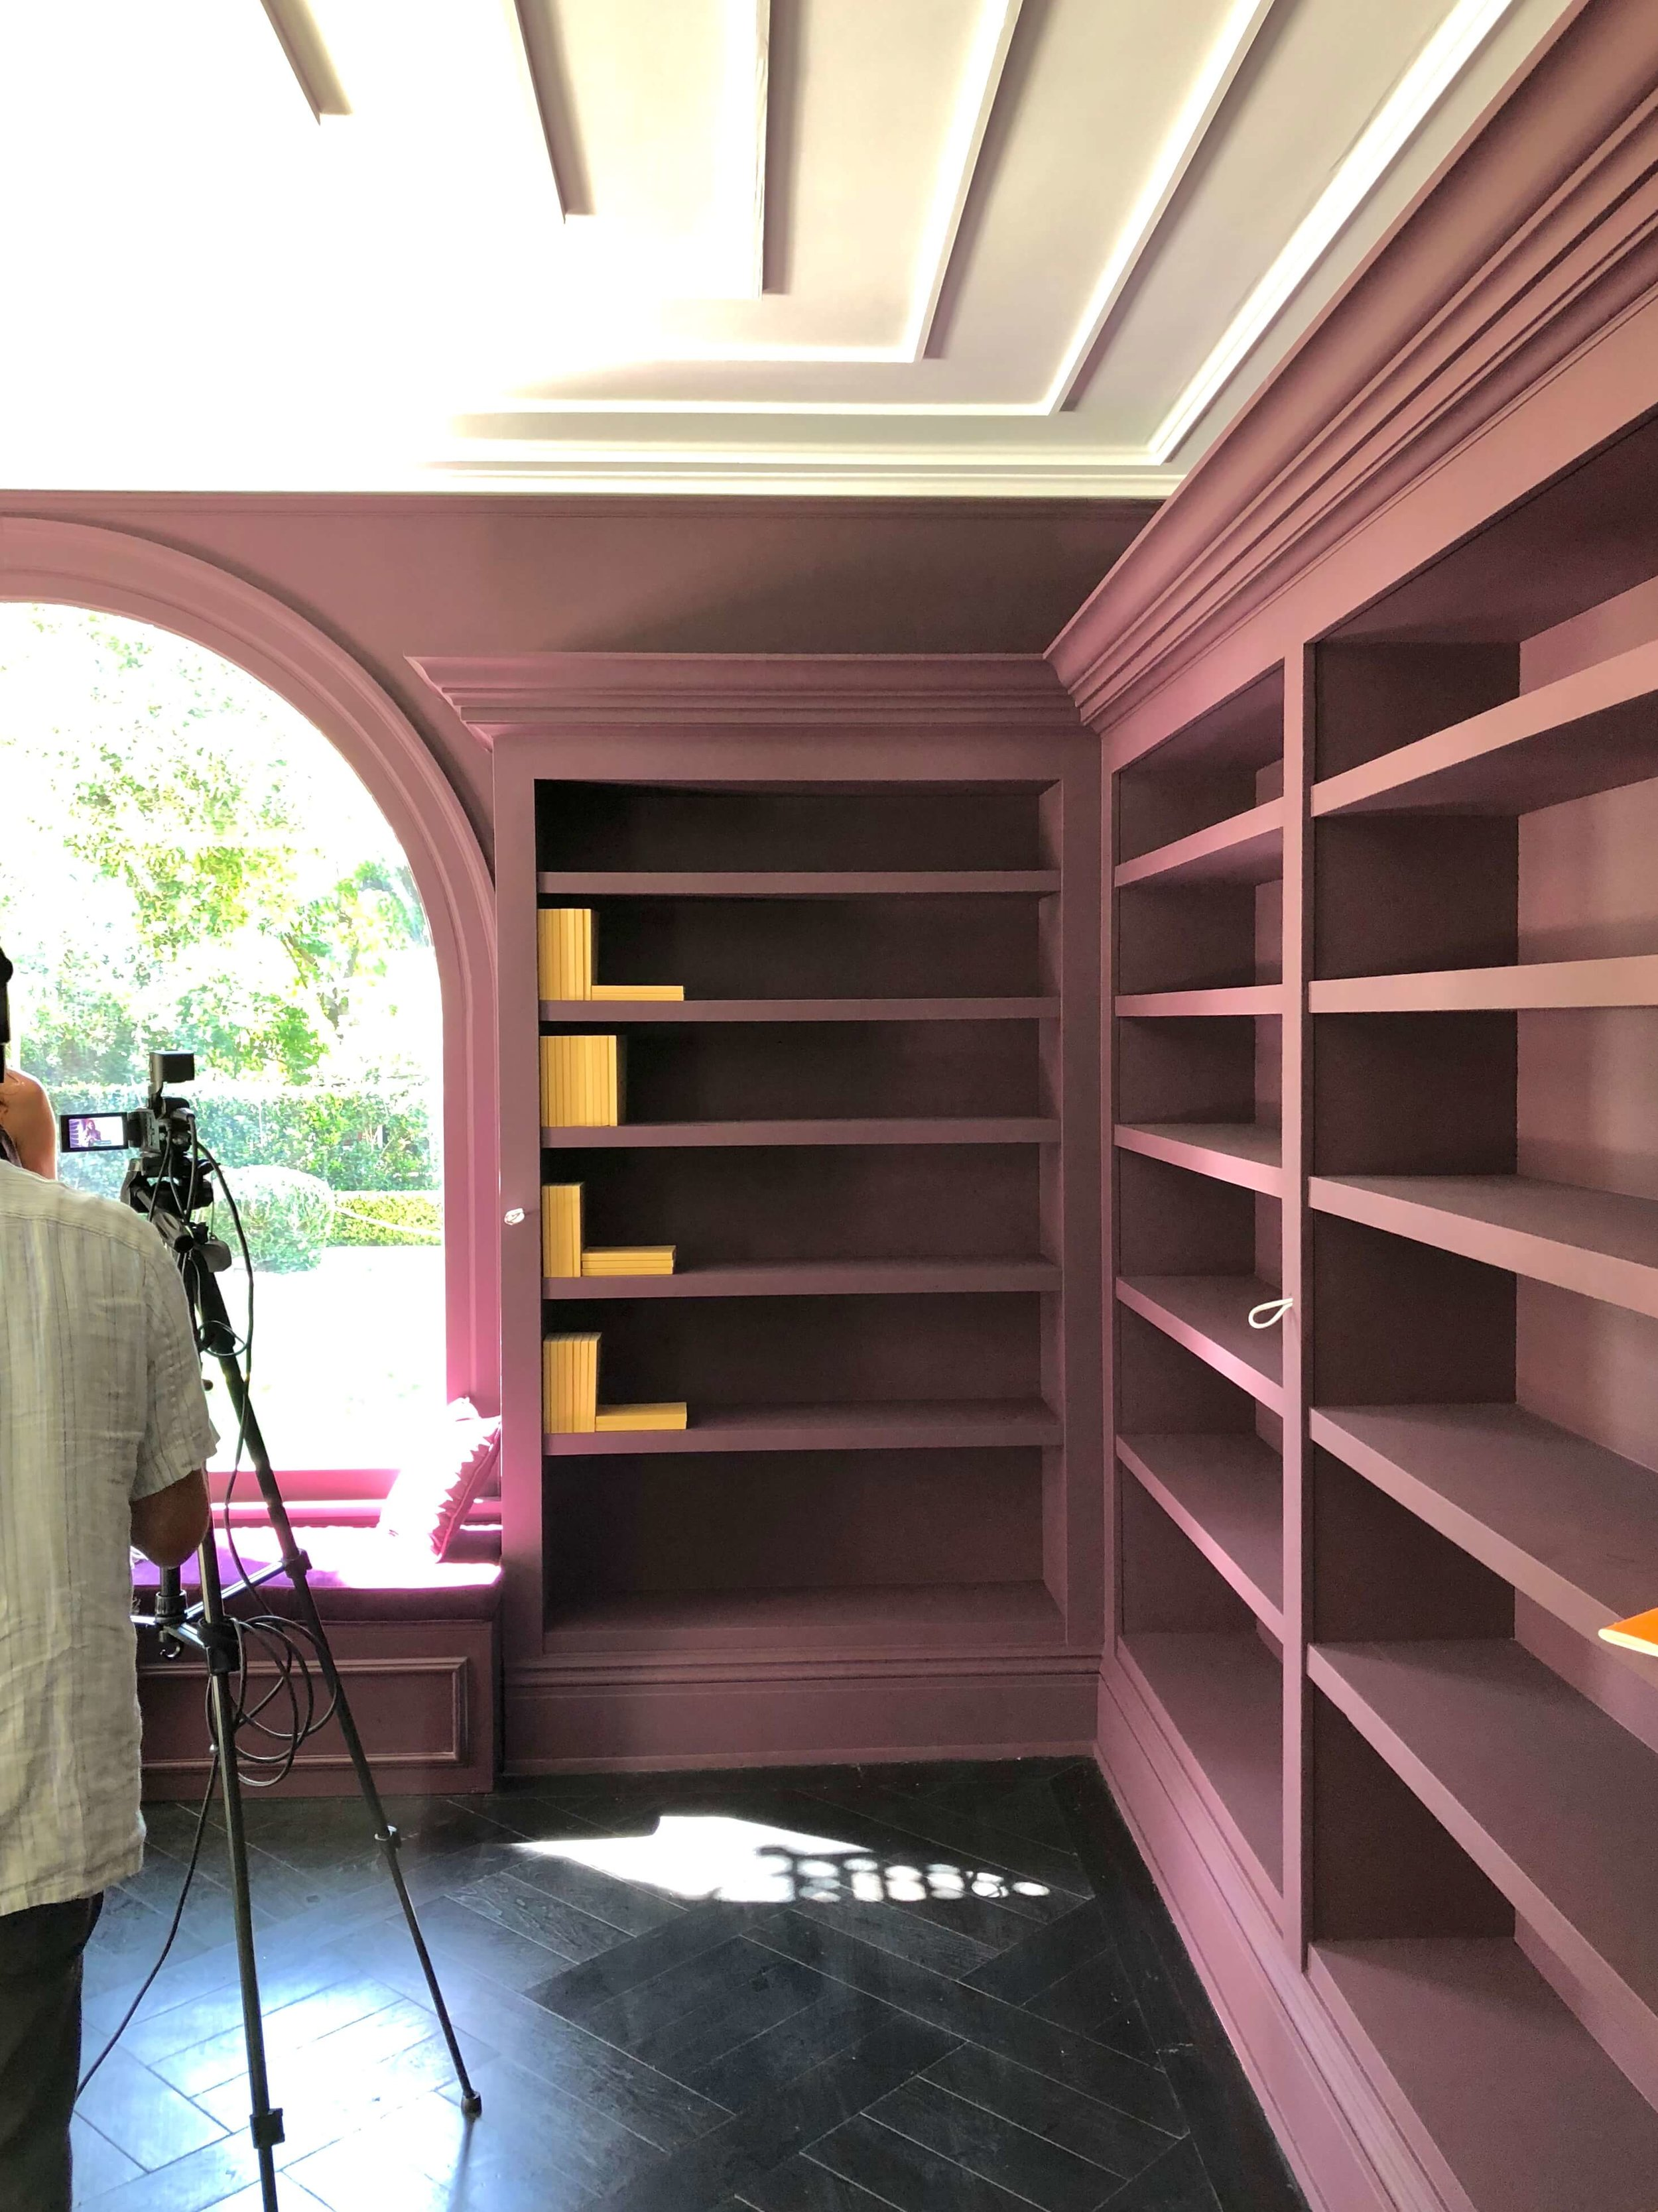 Library designed by Dina Marciano at the Pasadena Showcase House of Design with purple walls and bookcases #purplewalls #library #libraryideas #purpleroom